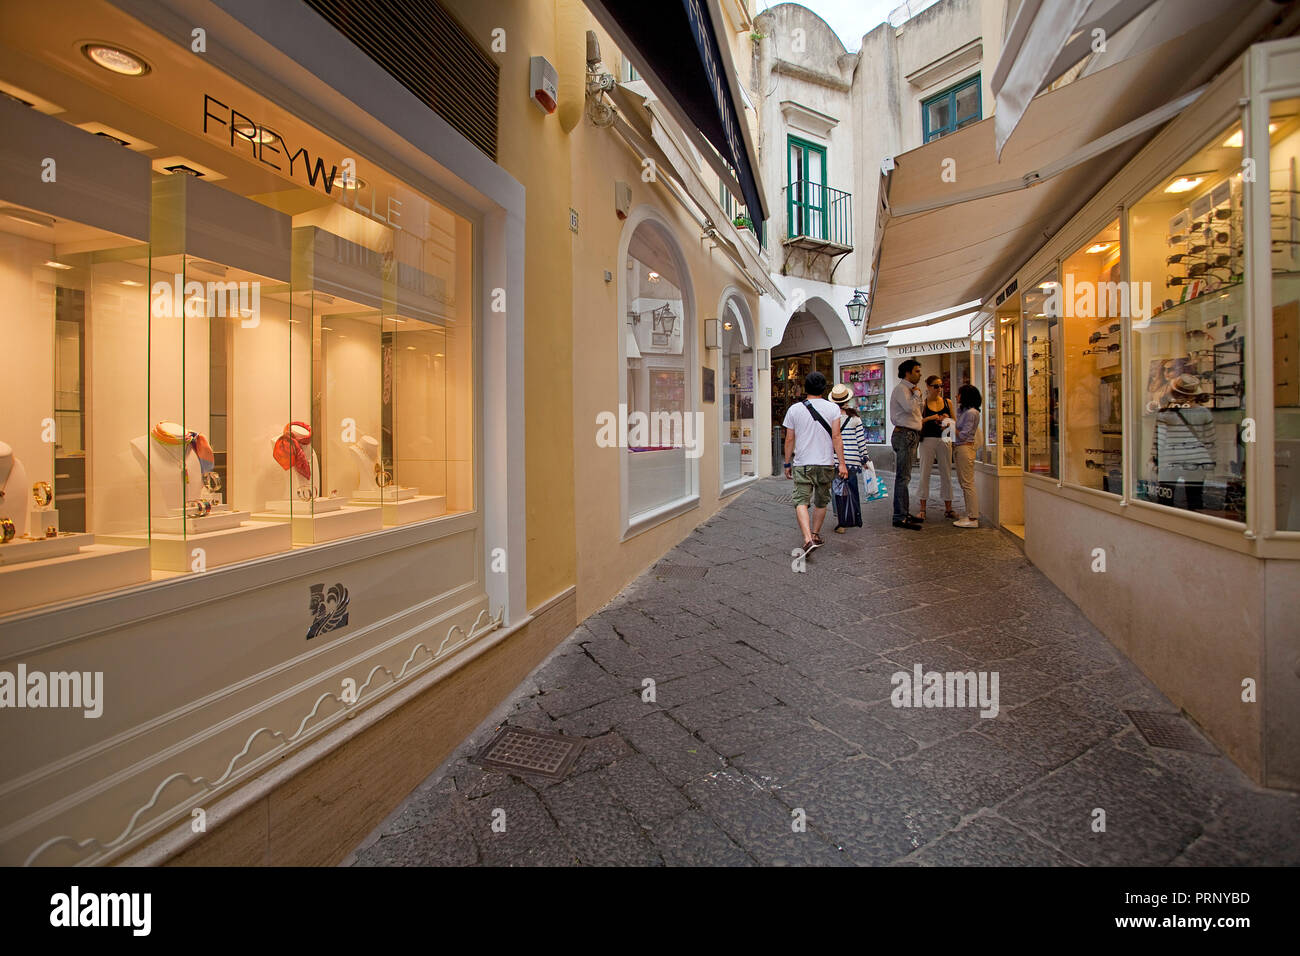 Luxury shops at a alley, old town of Capri island, Gulf of Naples, Campania, Italy - Stock Image